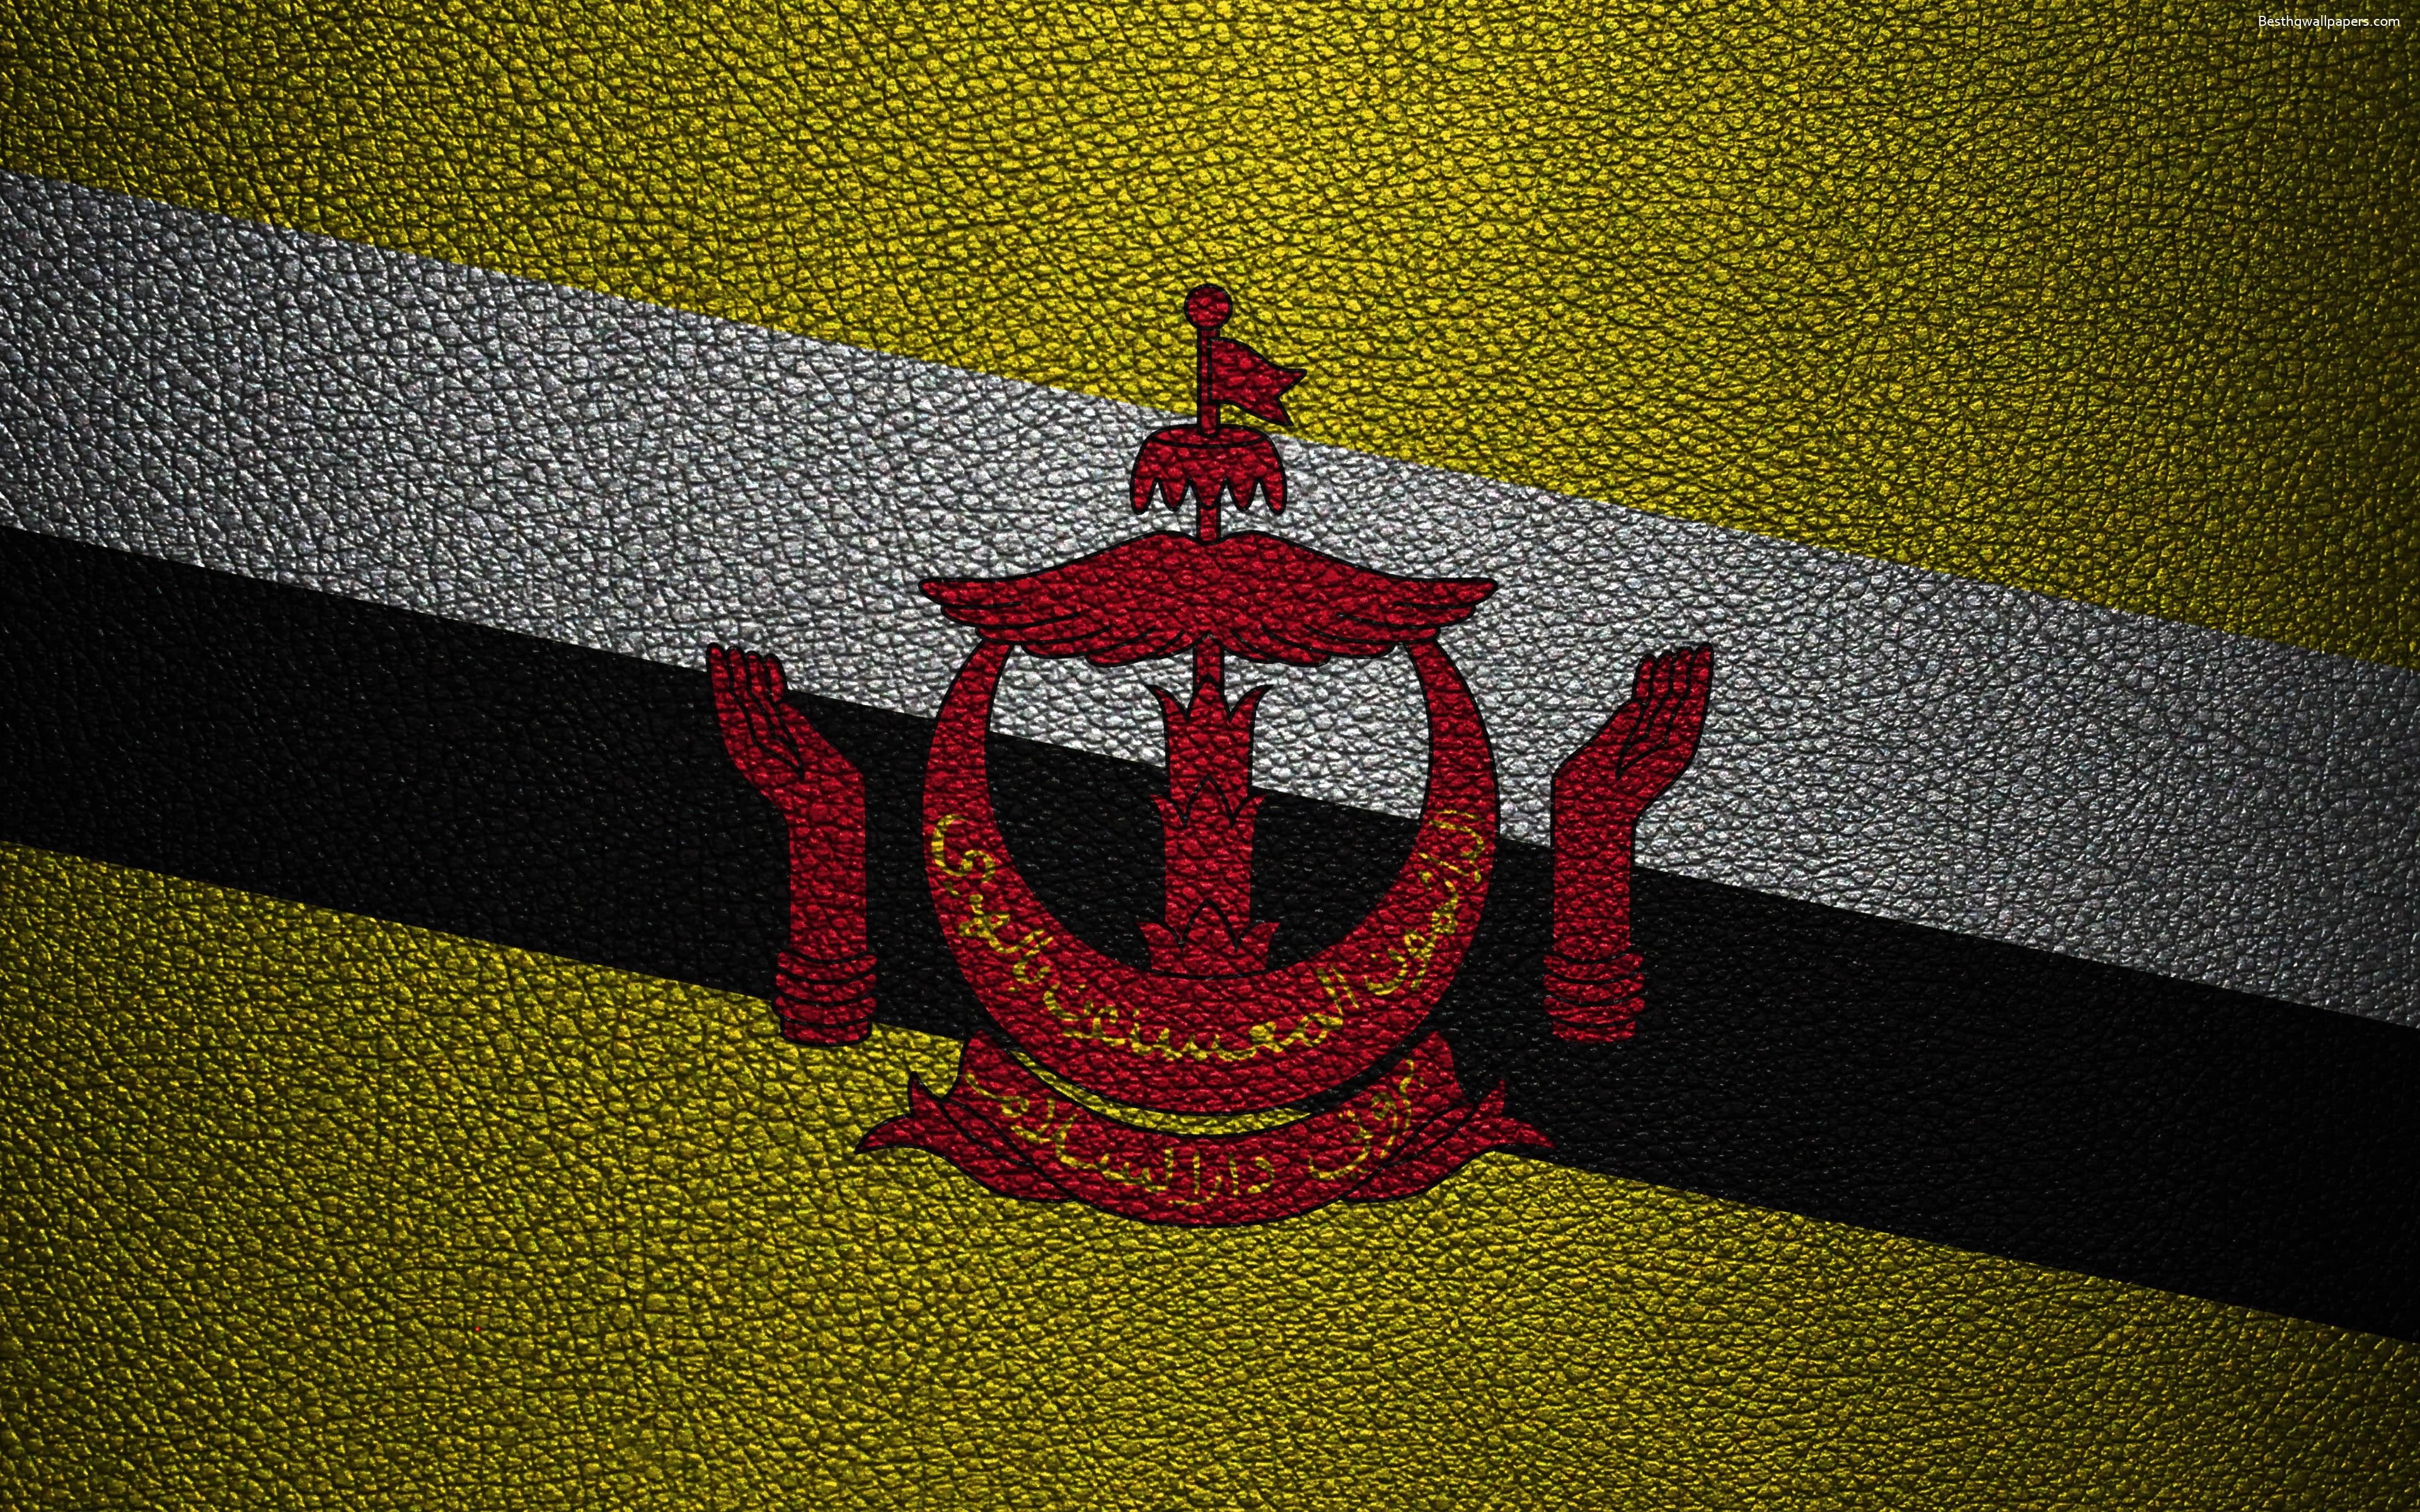 Download wallpapers Flag of Brunei, 4k, leather texture, Brunei flag